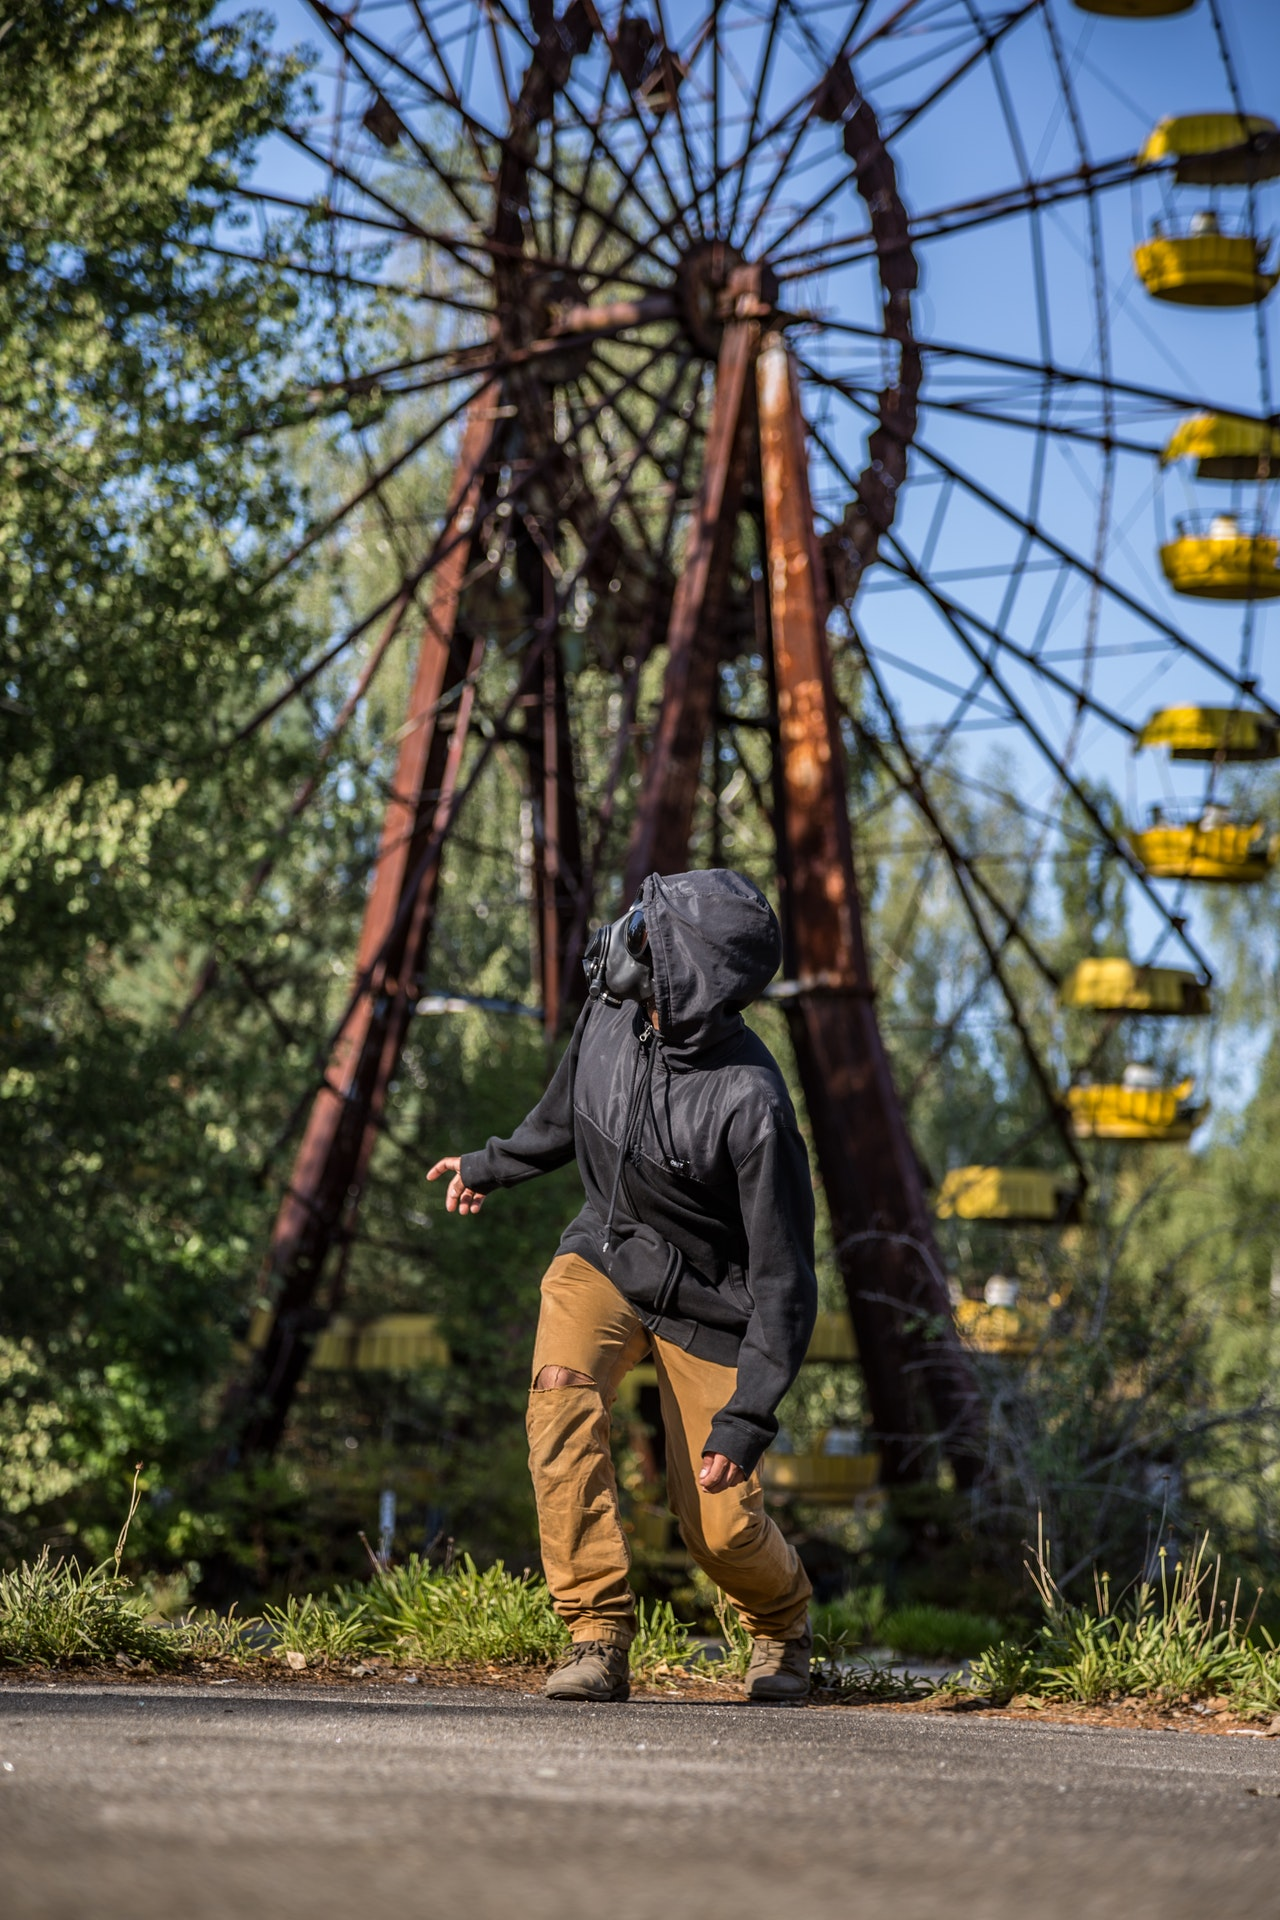 Chernobyl Video Game Article Image